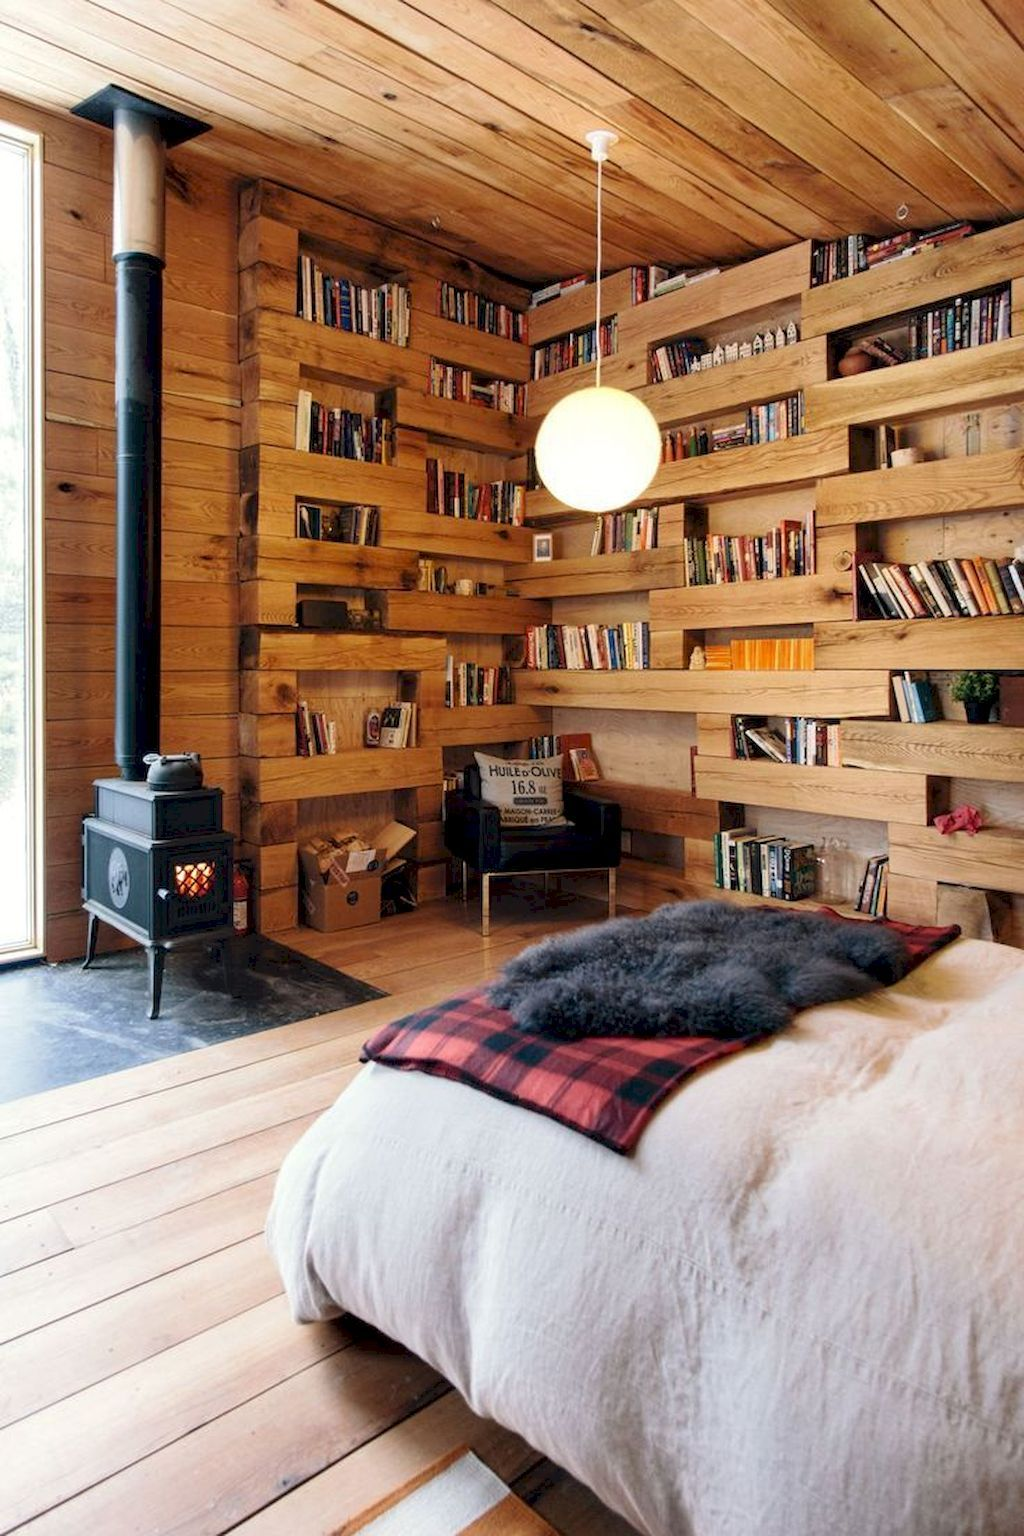 Small Home Library Design: Dwelling Transforming With A Dwelling Library In 2020